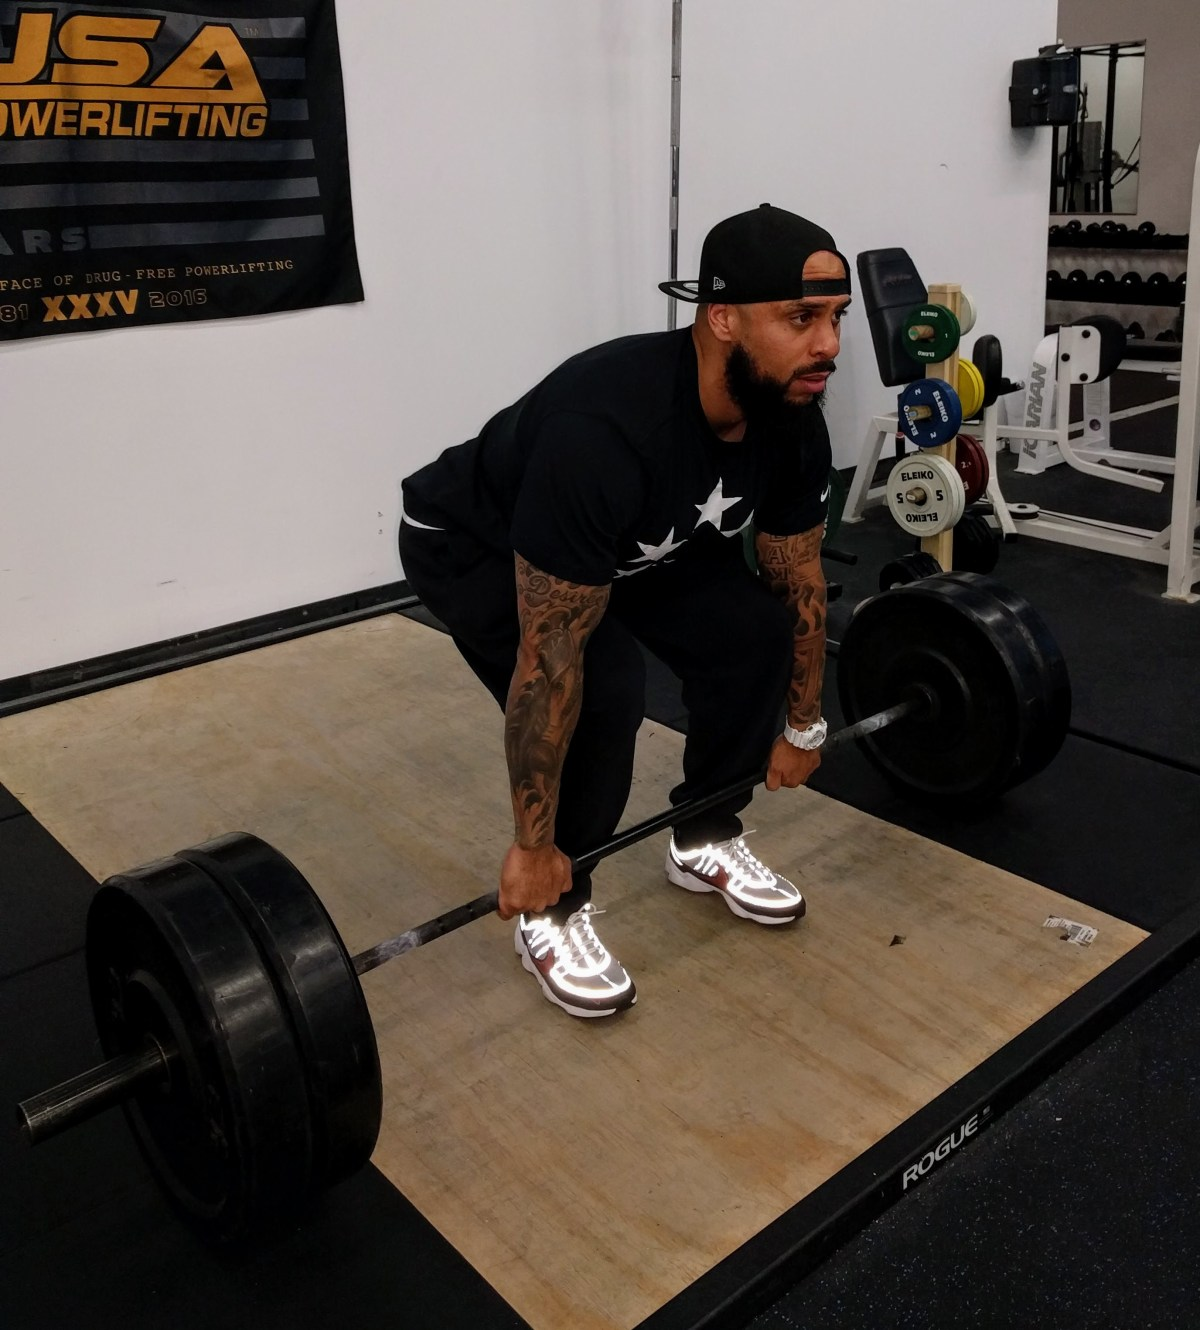 Which Strength Exercise Maximally Works Your Glutes And Hamstrings: Hip Thrust, Barbell Deadlift or Hex Bar Deadlift?